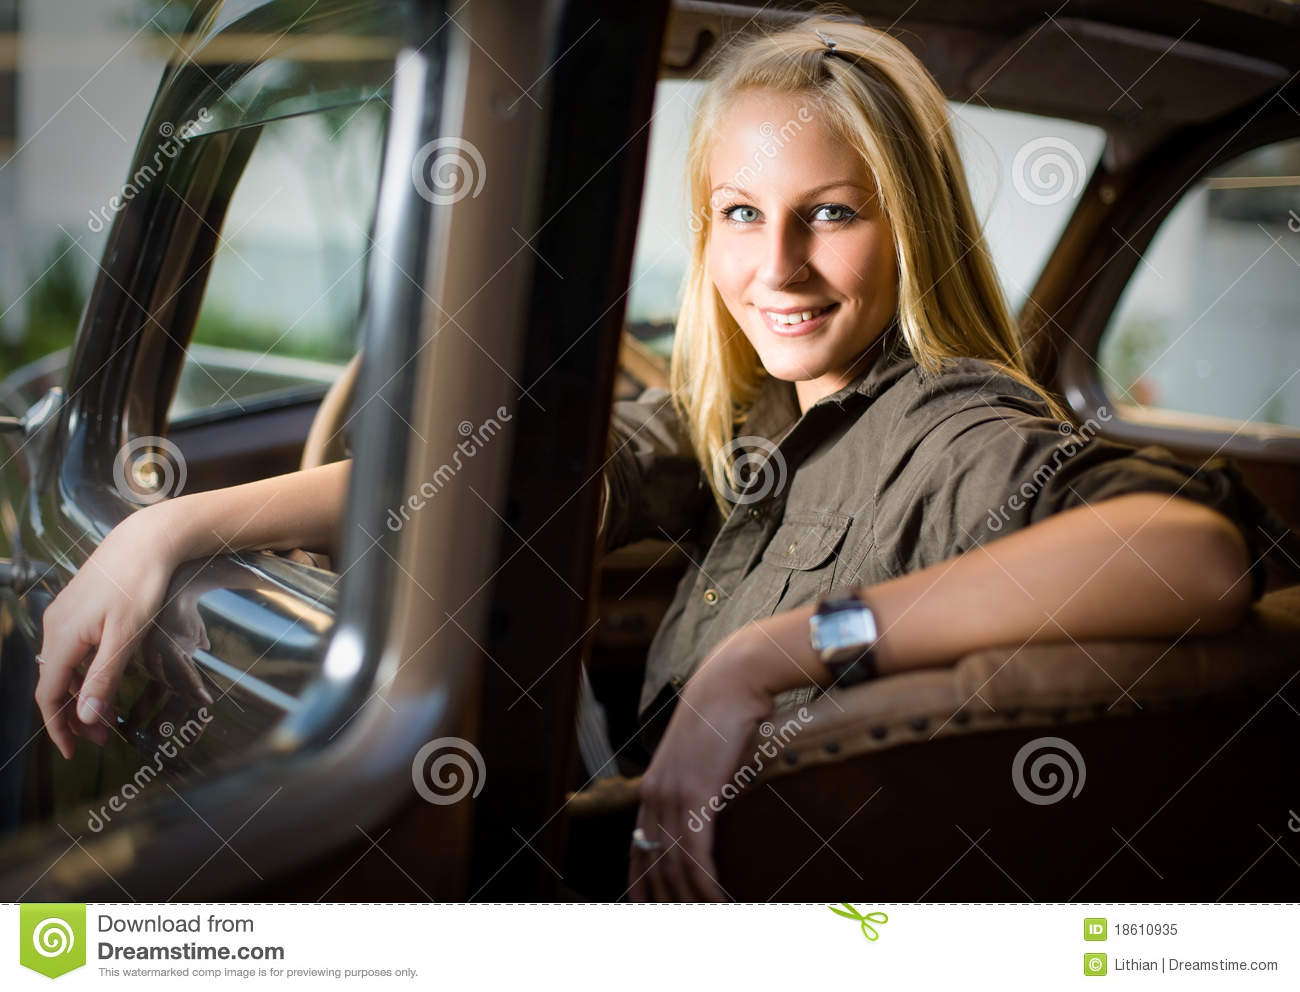 2932x2932 Pubg Android Game 4k Ipad Pro Retina Display Hd: Beautiful Blond Girl In A Black Vintage Car. Royalty Free